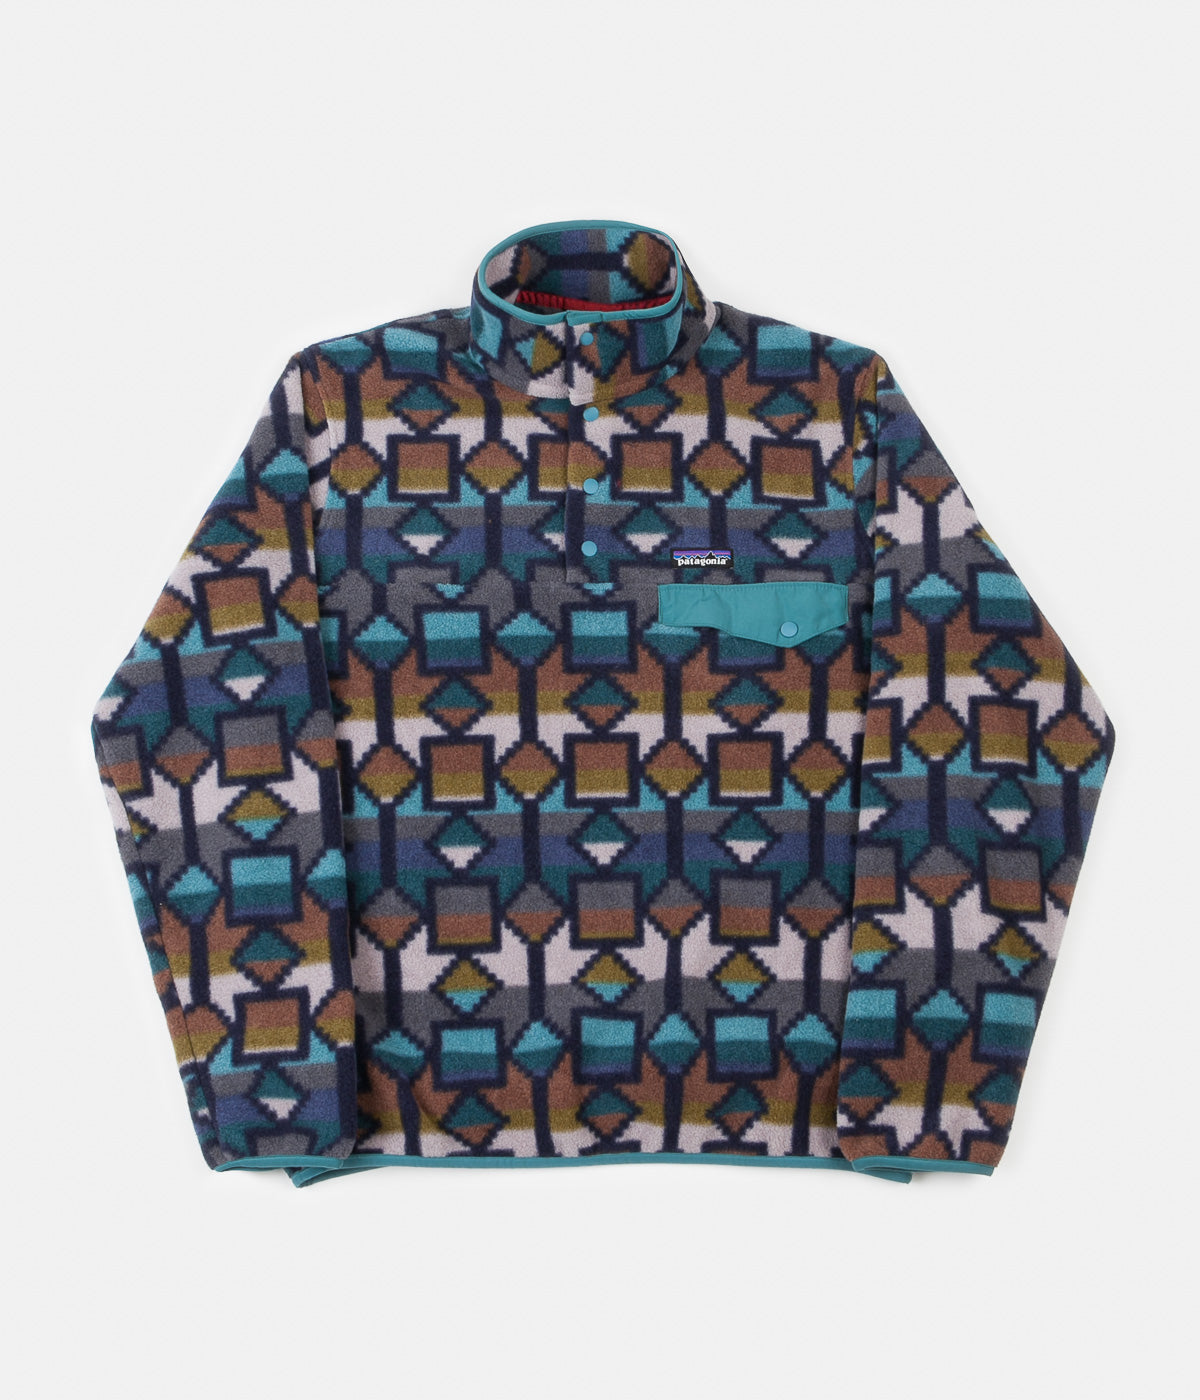 Patagonia Lightweight Synch Snap-T Pullover Sweatshirt - Cedar Mesa Big: New Navy